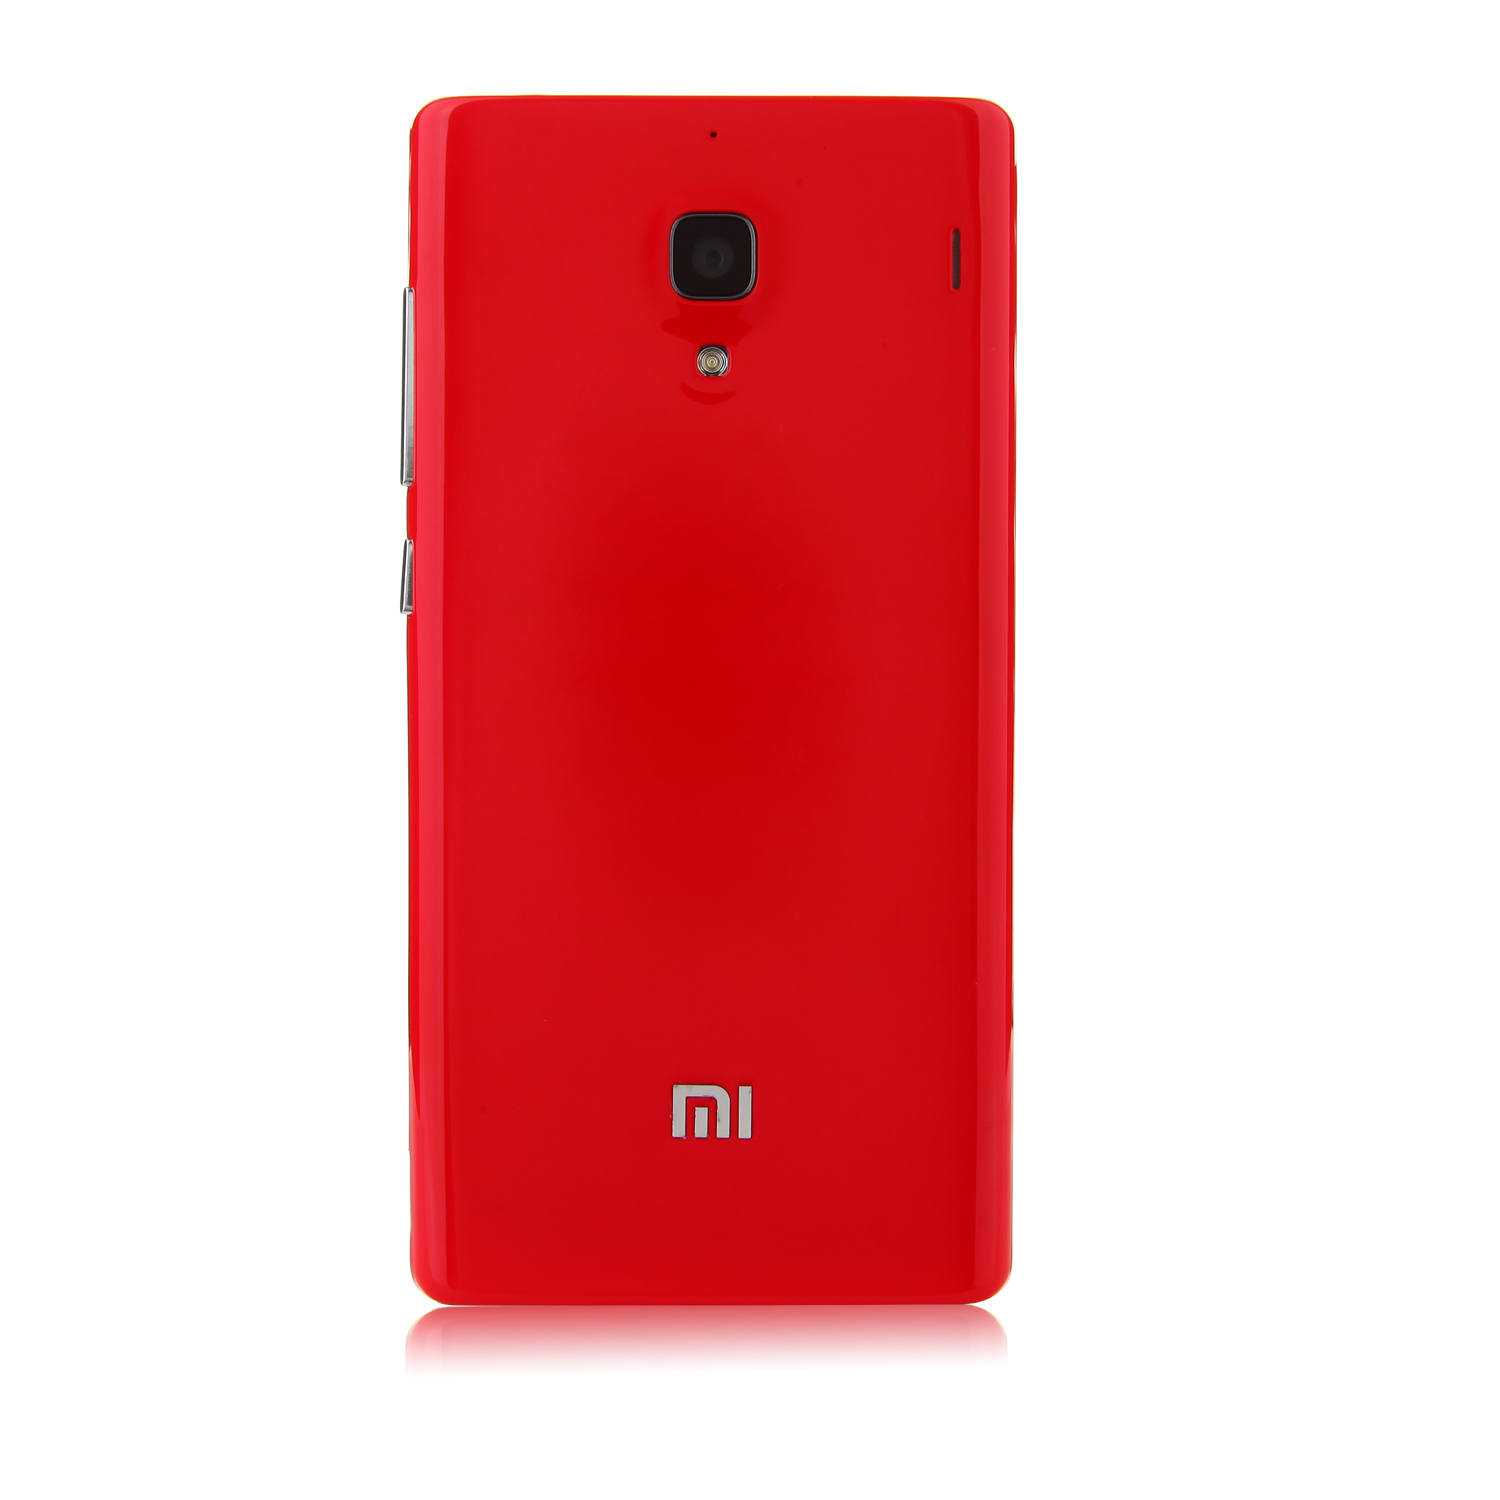 Replacement Battery Cover Back Case For Xiaomi Redmi 1s Grey Smartphone Red